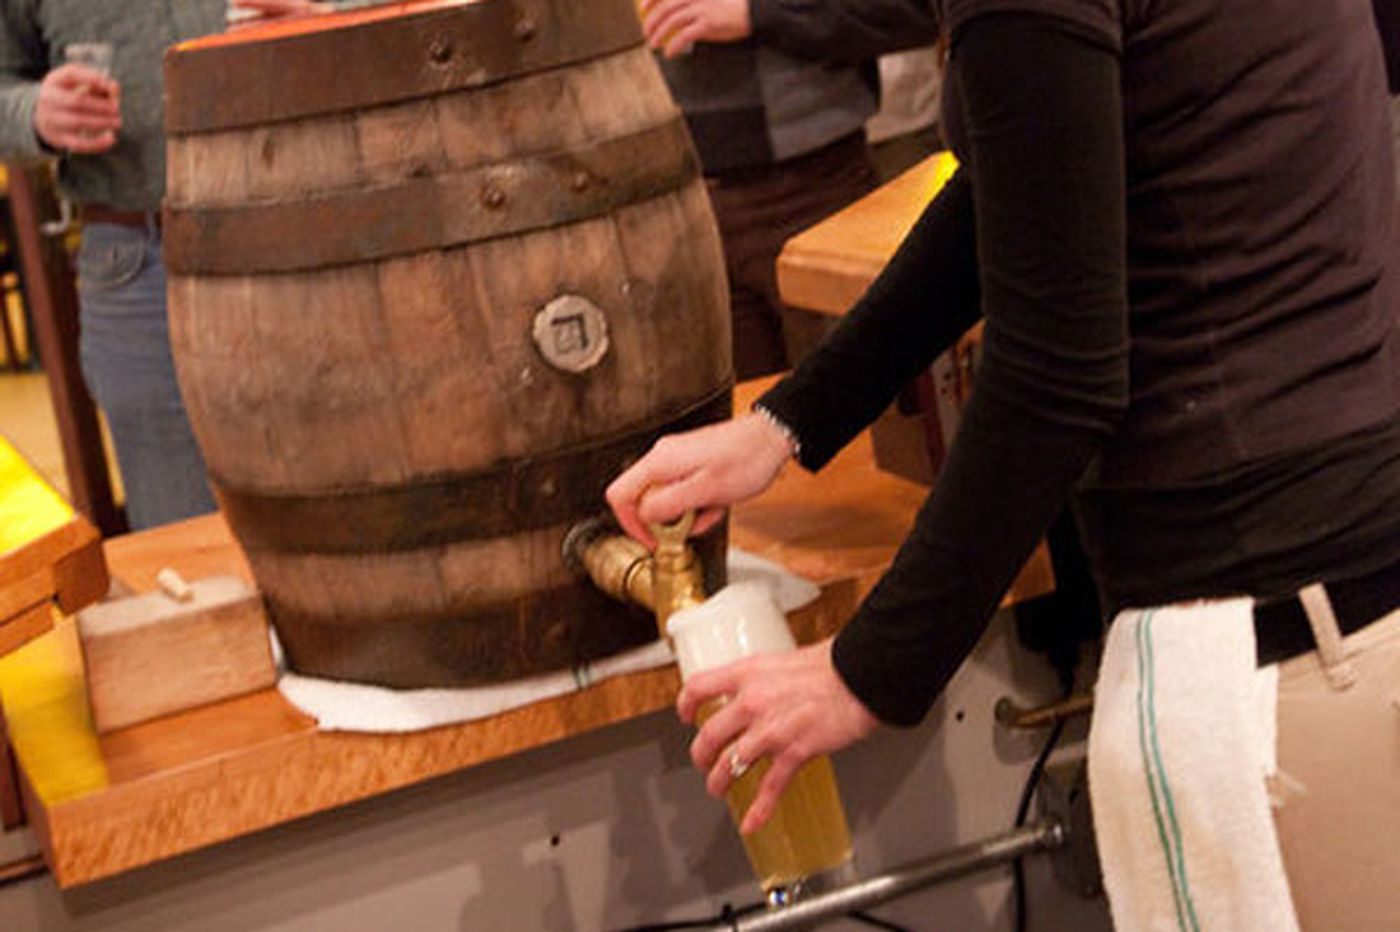 Joe Sixpack: There's a new wave of craft breweries coming to the Philly region